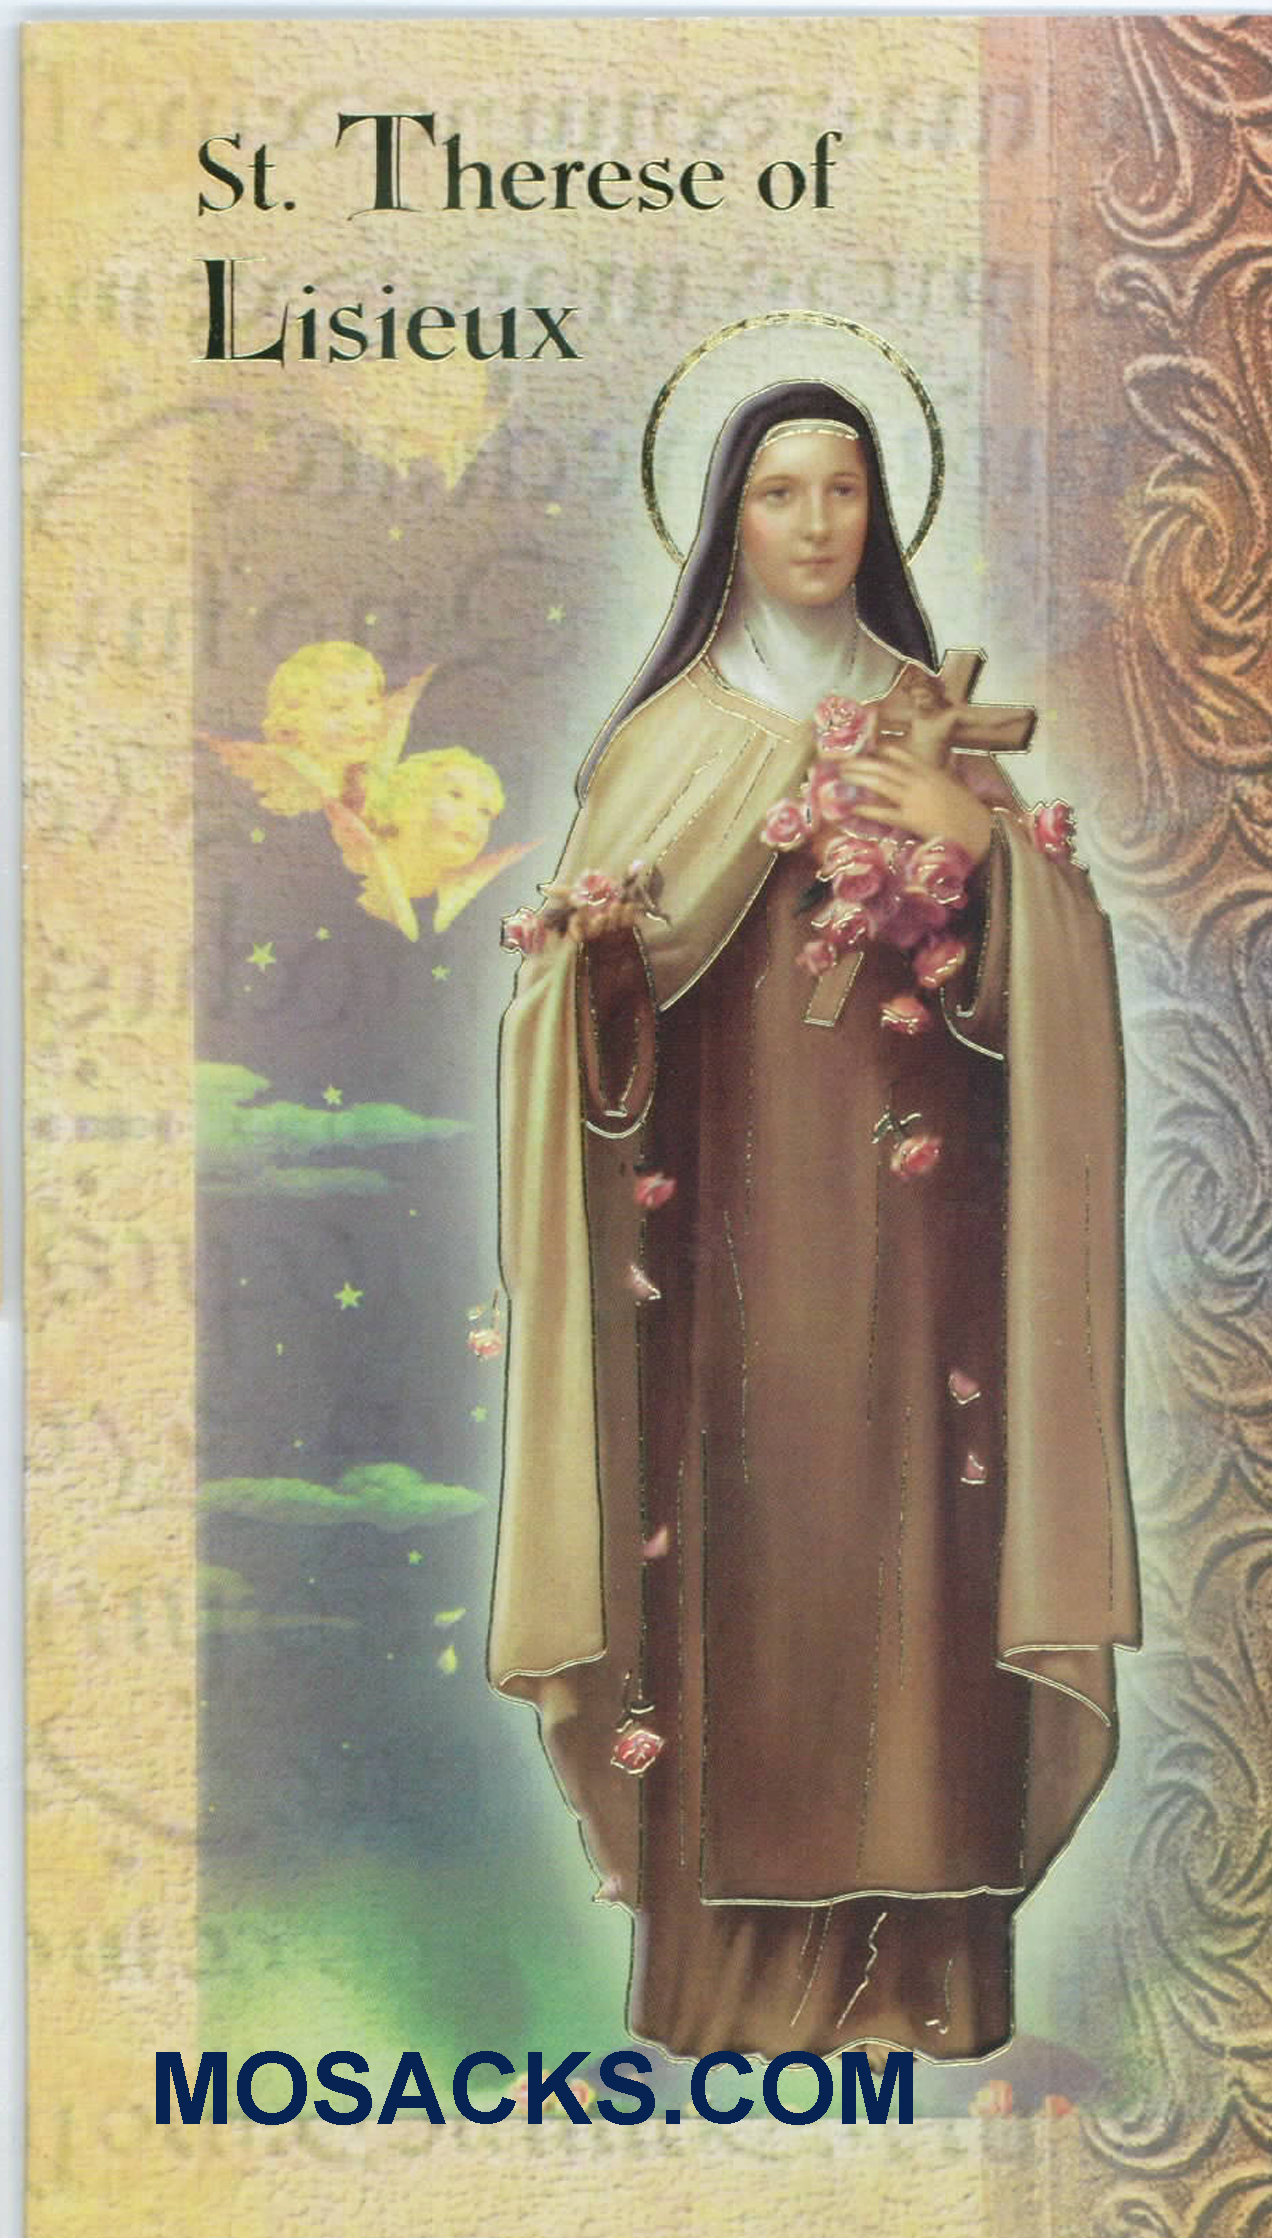 St. Theresa of Lisieux Laminated Bi-fold Holy Card F5-341